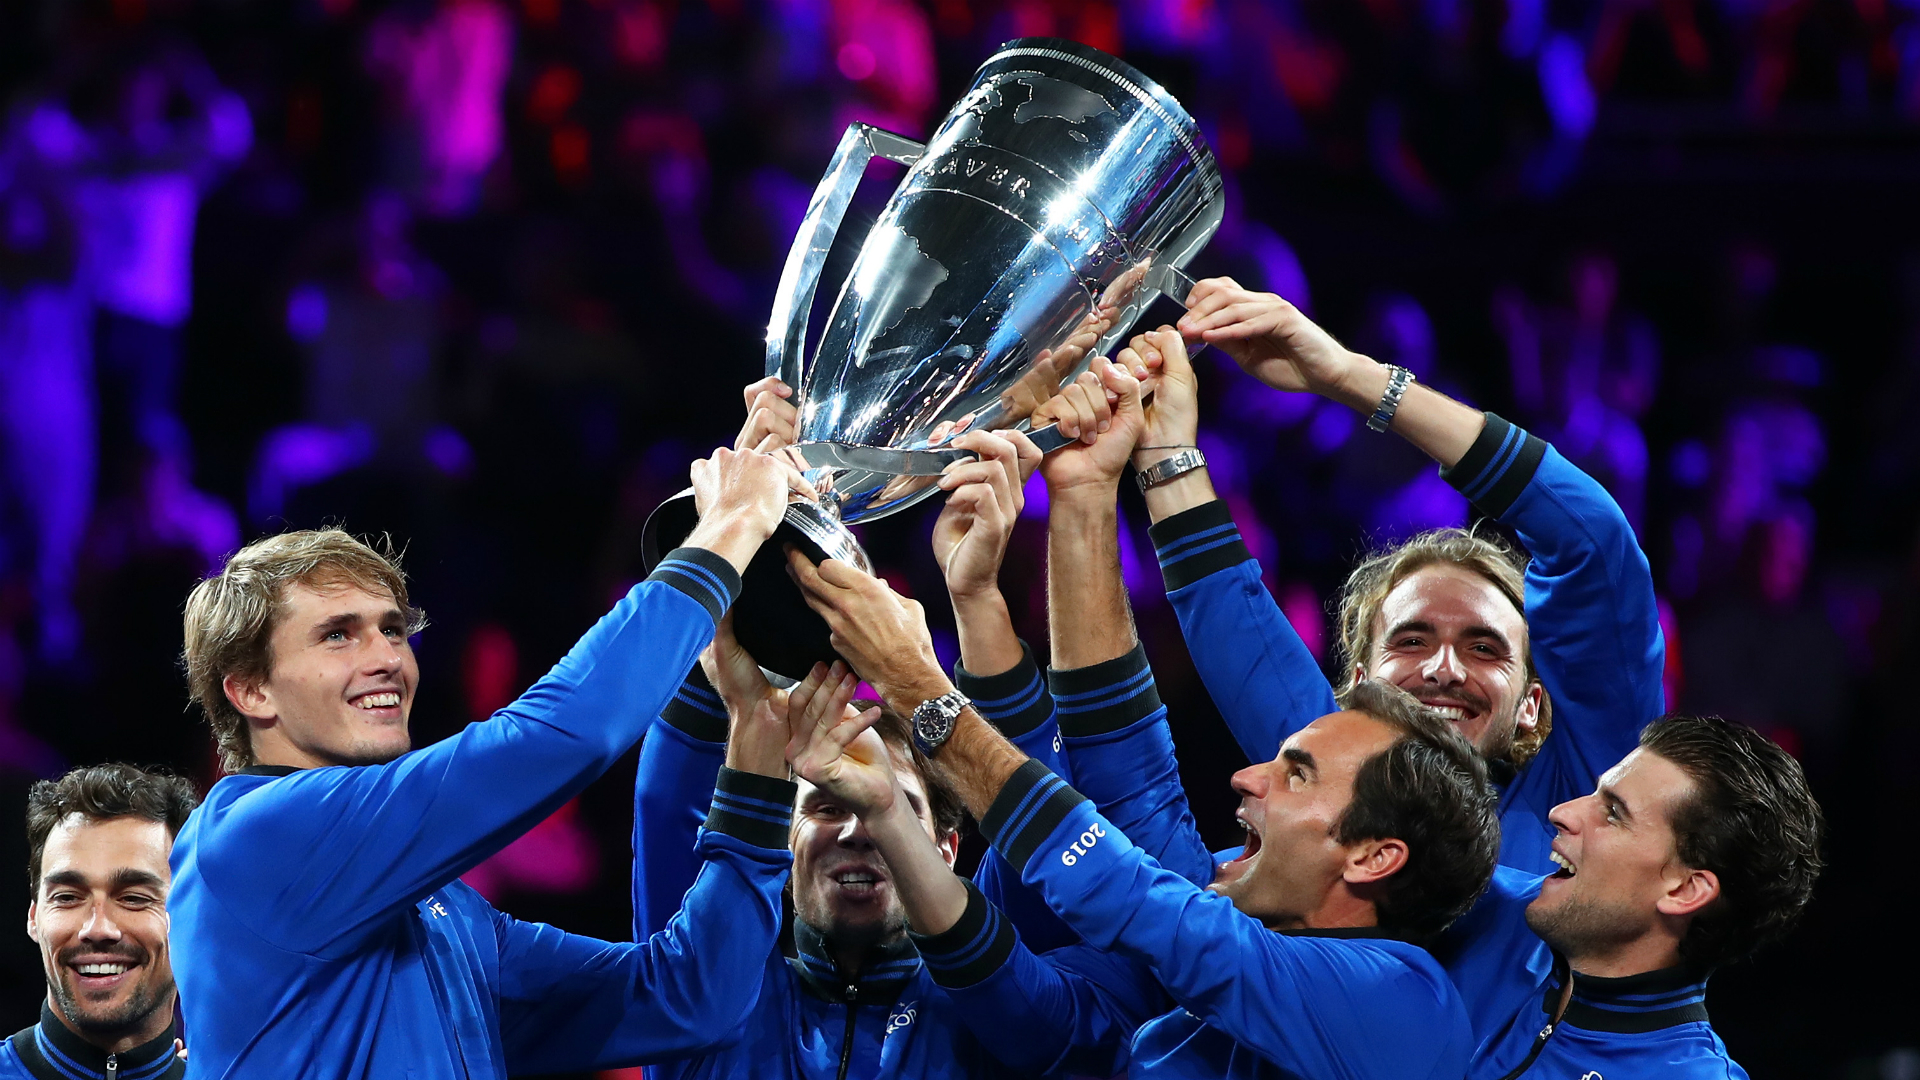 Roger Federer and Alexander Zverev scored vital singles wins as Team Europe roared back to beat Team World at the Laver Cup in Geneva.